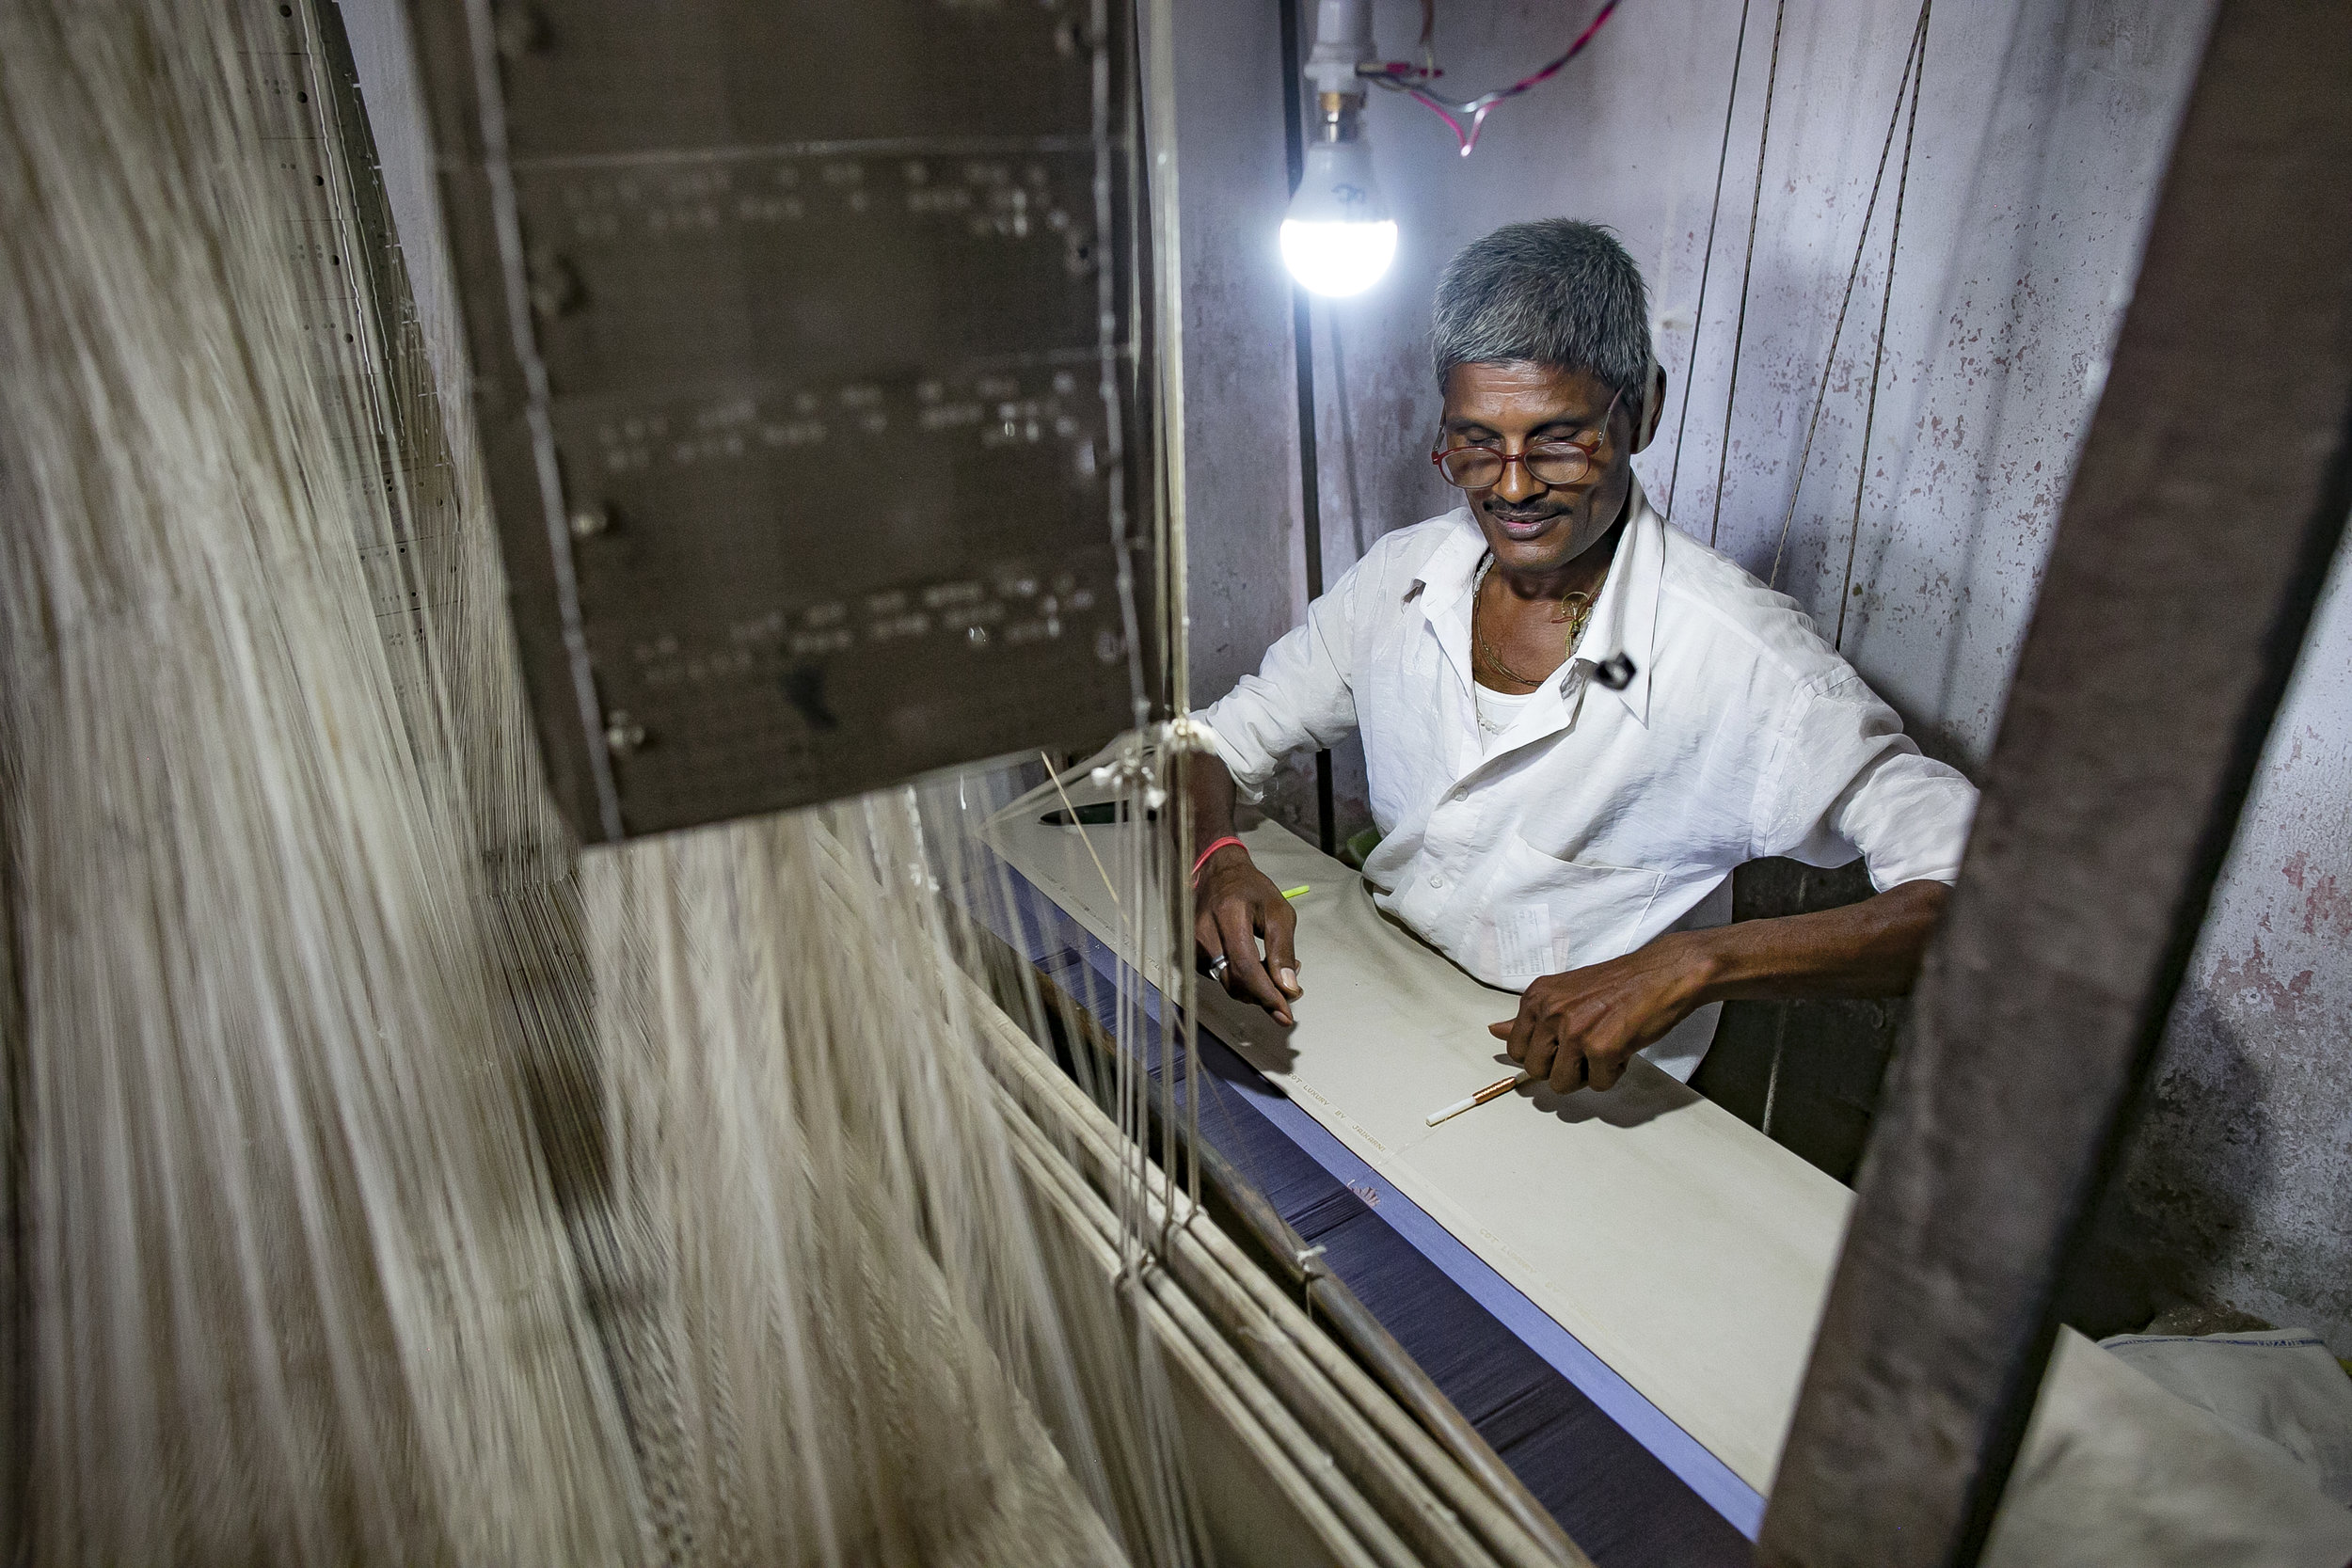 - Gopal works in his shop in Varanasi, India (image from another Traidcraft Exchange project). Credit: Traidcraft Exchange/Allison Joyce